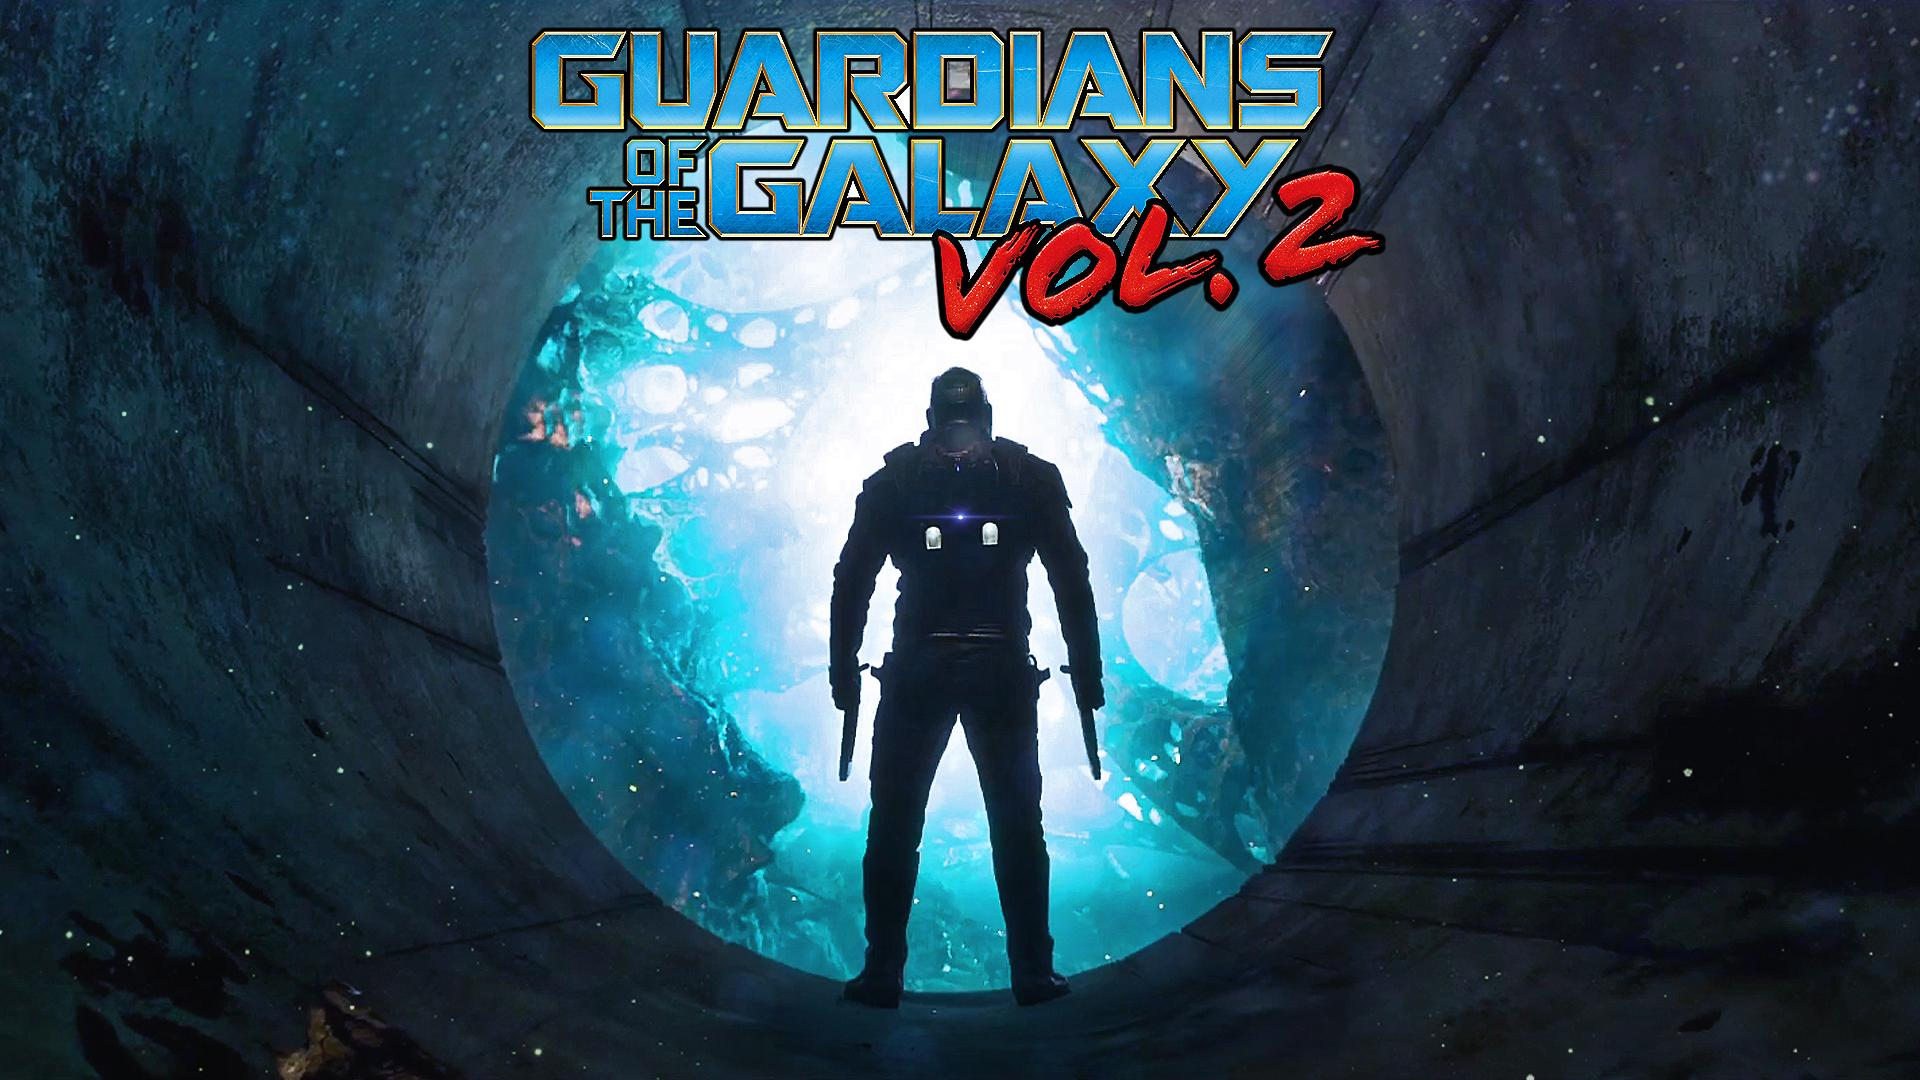 Guardians-Of-the-Galaxy-Vol-screen-grab-created-into-1080x1920-Need-iPhone-S-Plus-wallpaper-wp3606458